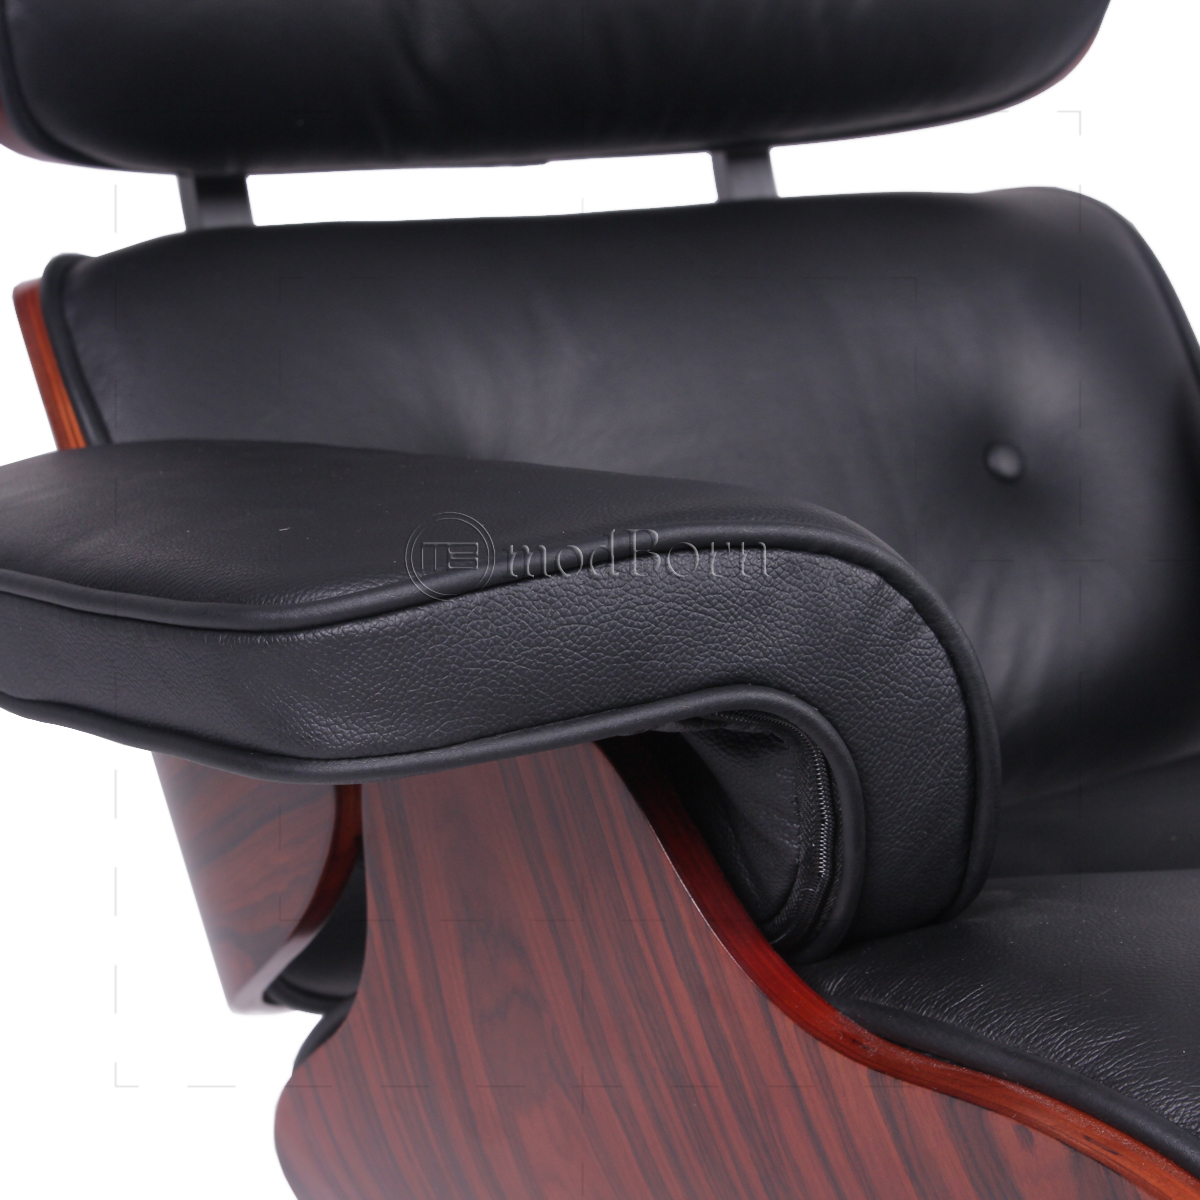 Fabulous Eames Style Lounge Chair And Ottoman Black Leather Unemploymentrelief Wooden Chair Designs For Living Room Unemploymentrelieforg